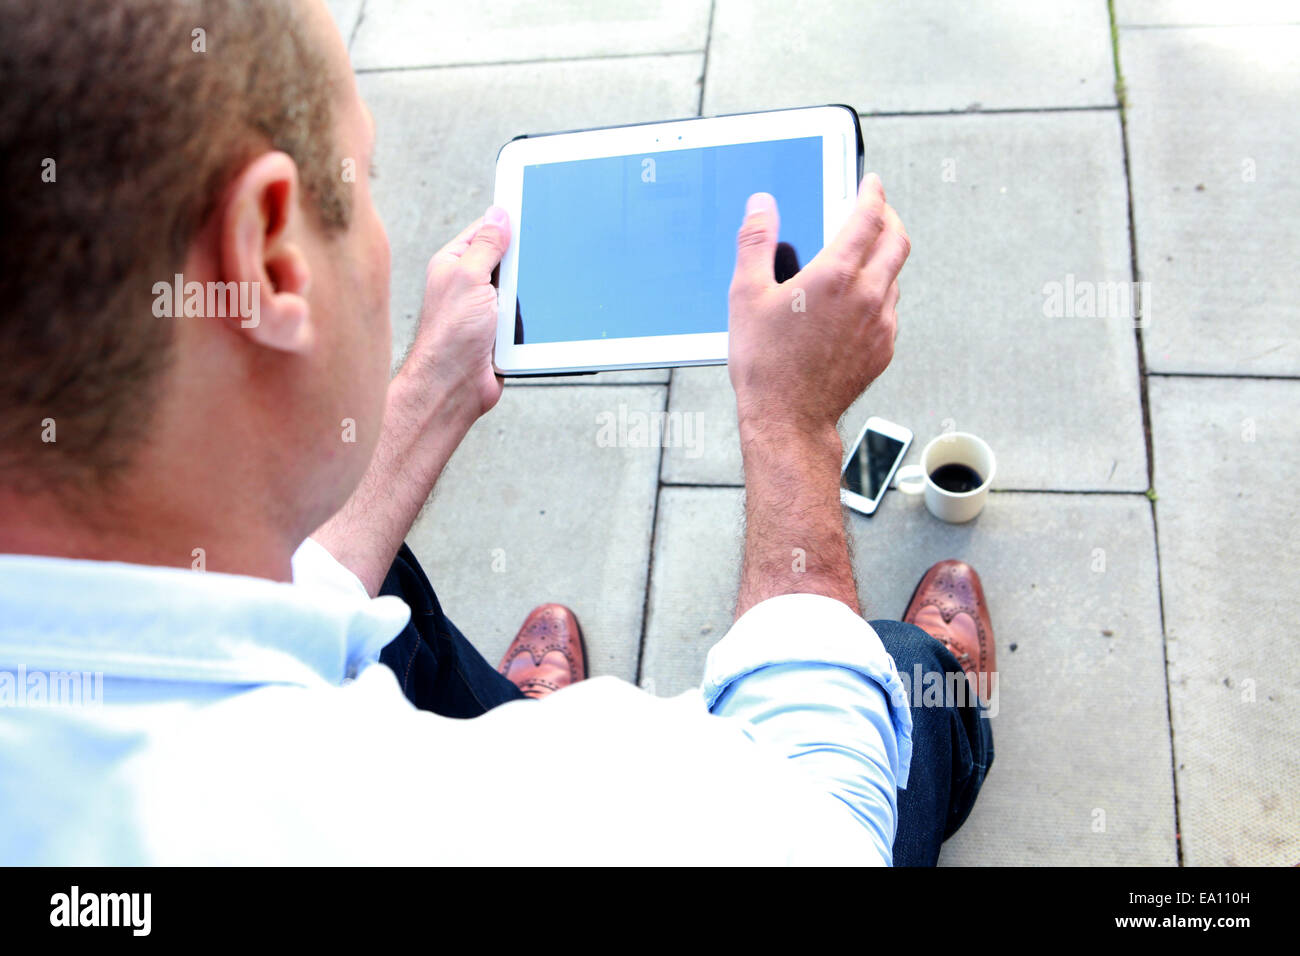 Over shoulder view of male architect digital tablet on office step - Stock Image